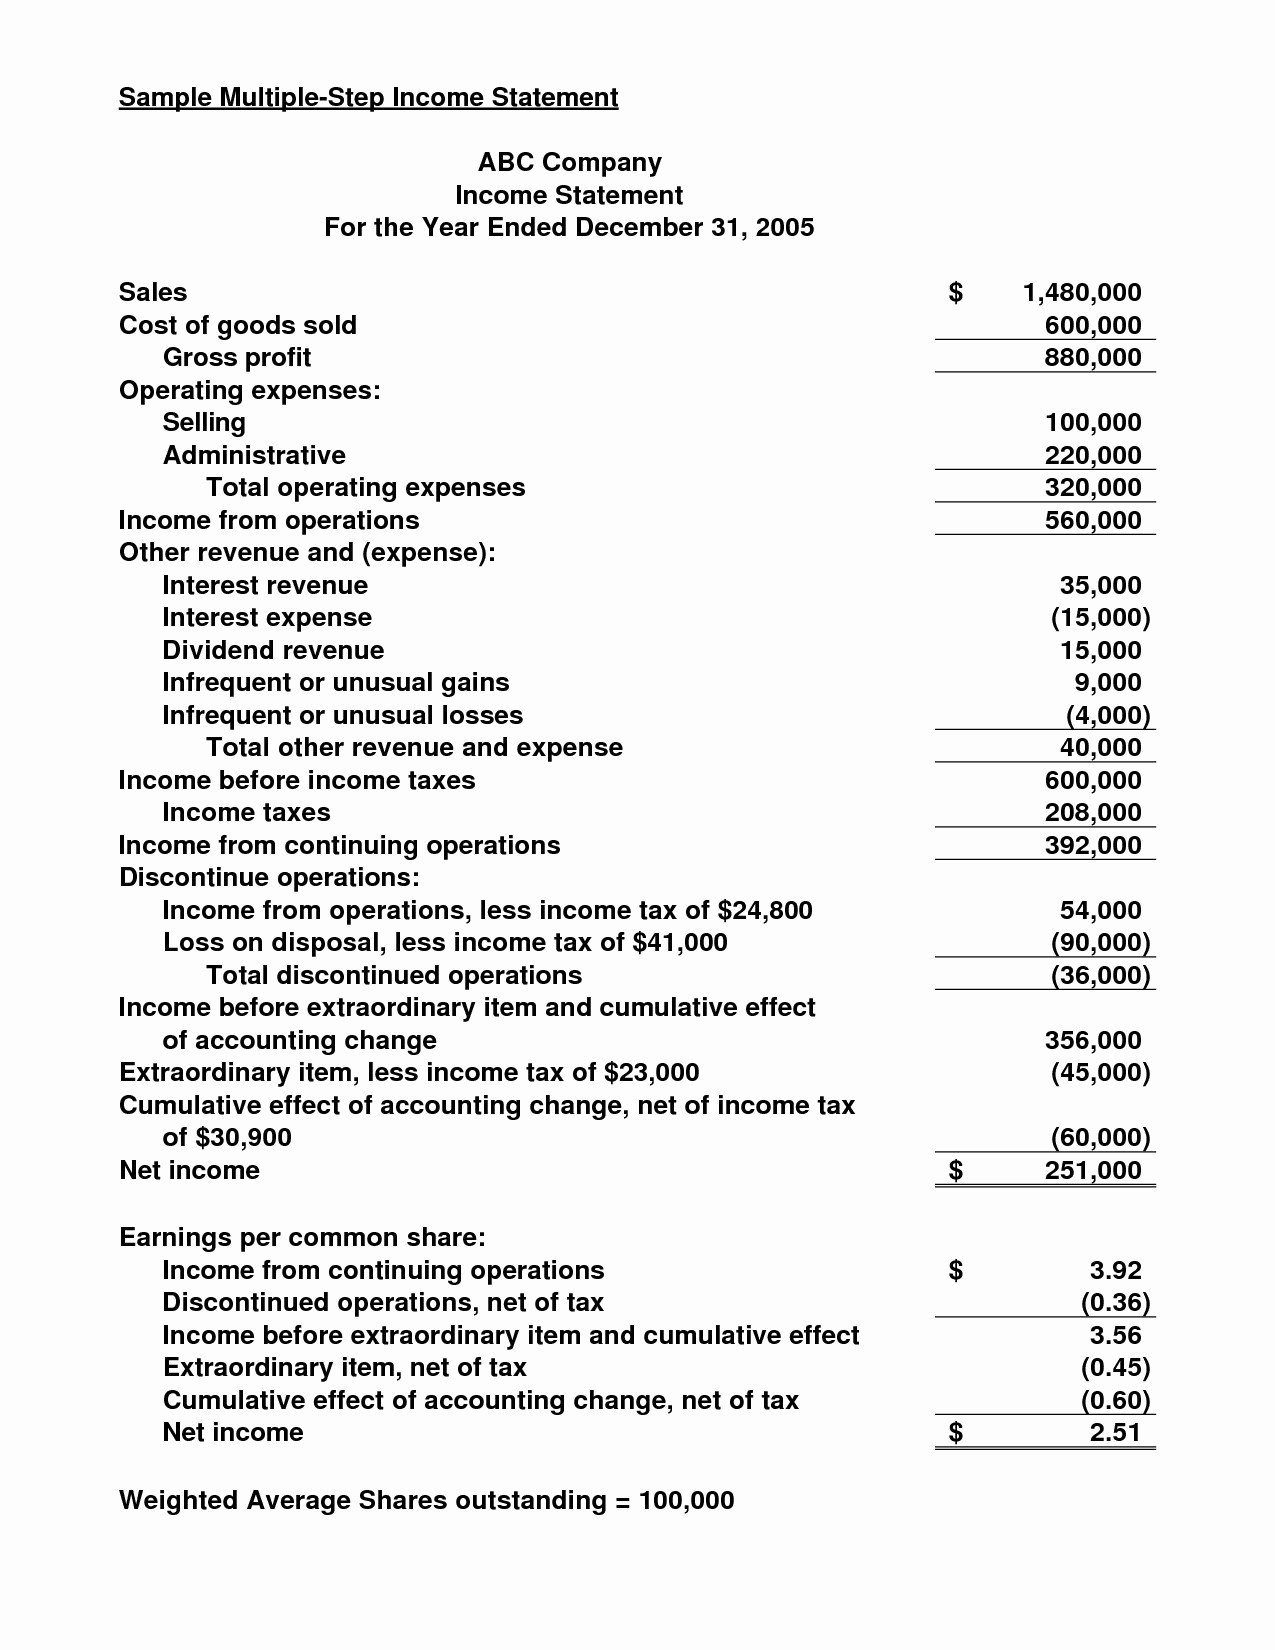 Small Business Income Statement Template Best Of Sample In E Statement for Small Business Excel